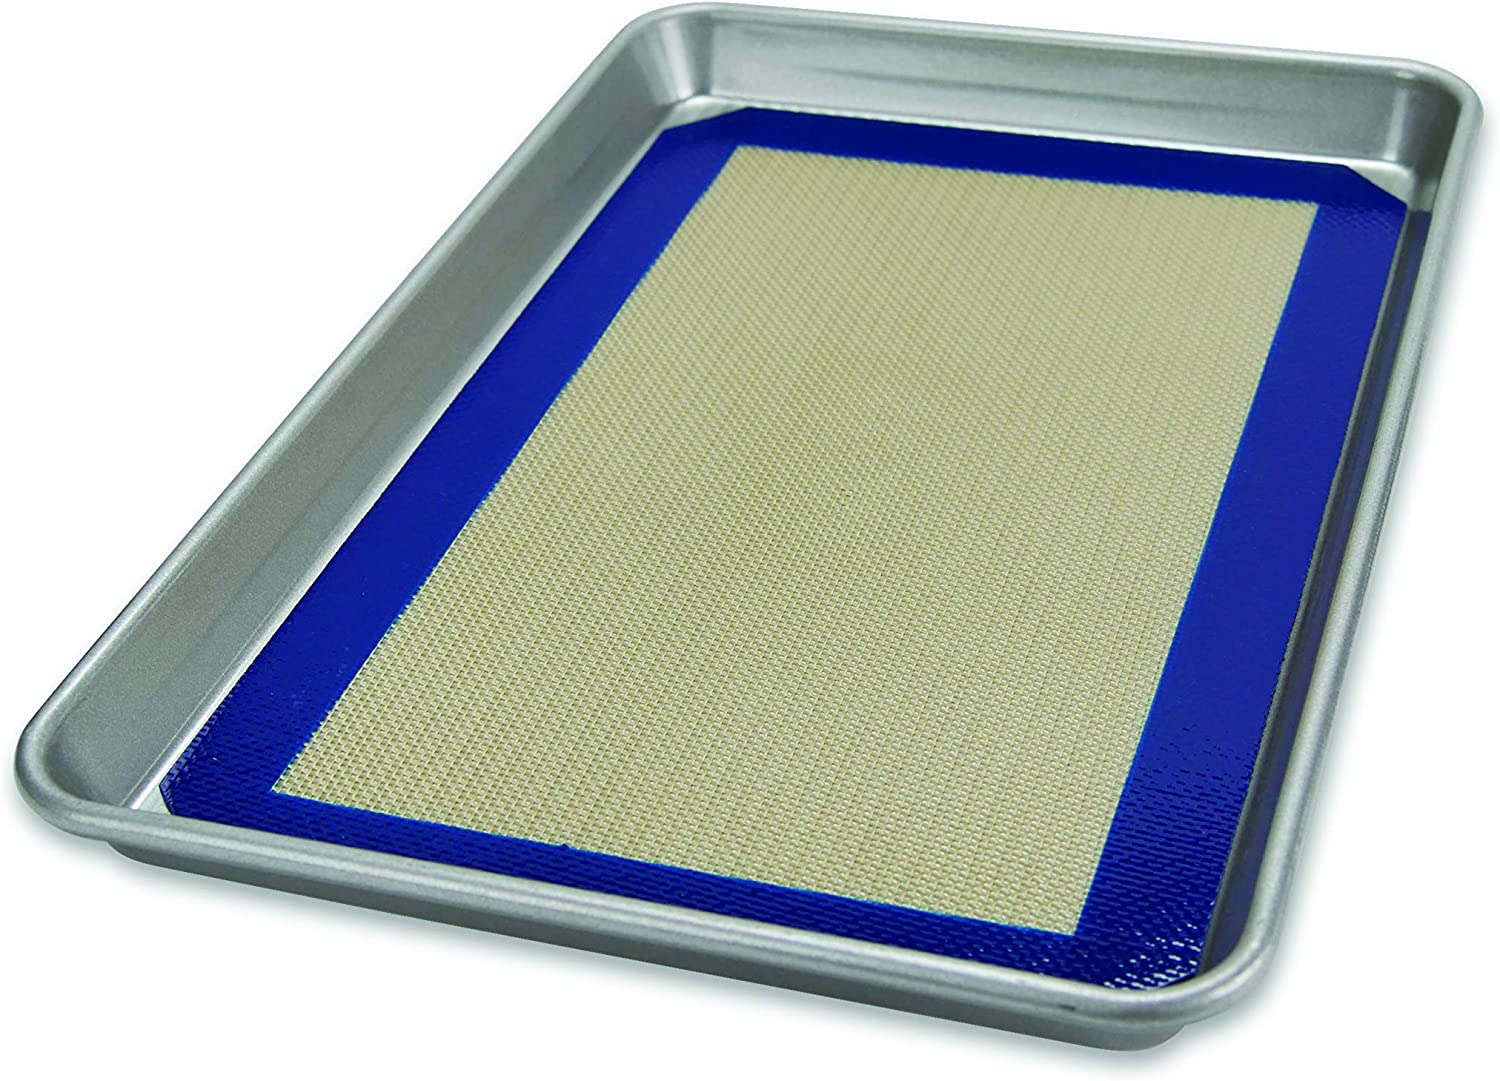 USA Pan Bakeware Half Sheet Pan, Warp Resistant Nonstick Baking Pan, Made in the USA from Aluminized Steel: Jelly Roll Pans: Kitchen & Dining